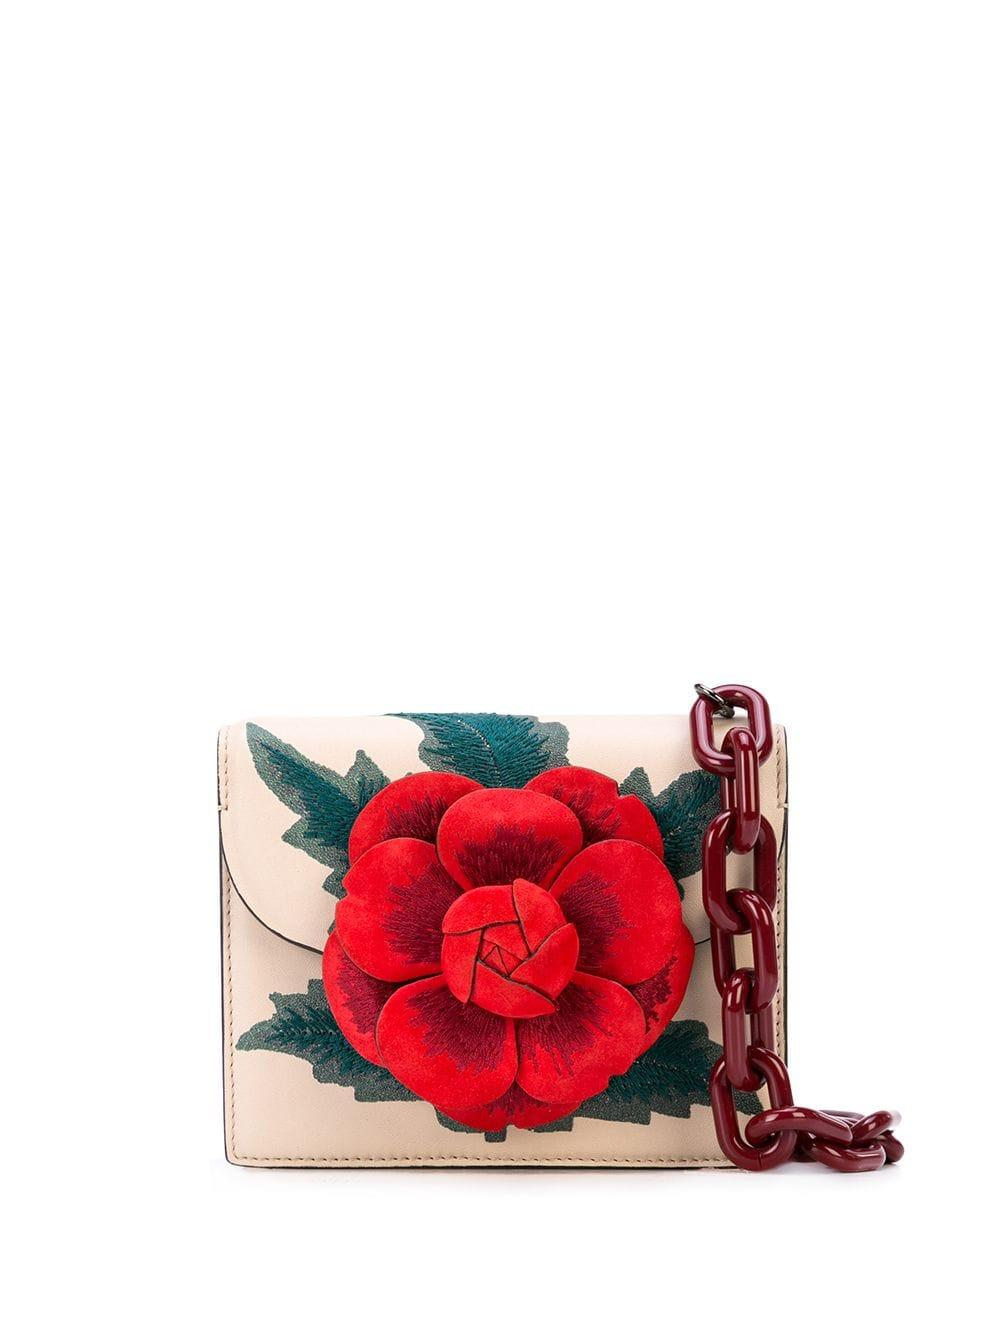 Mini Tro Calfskin With Embroidery Item # 19FH206CLF